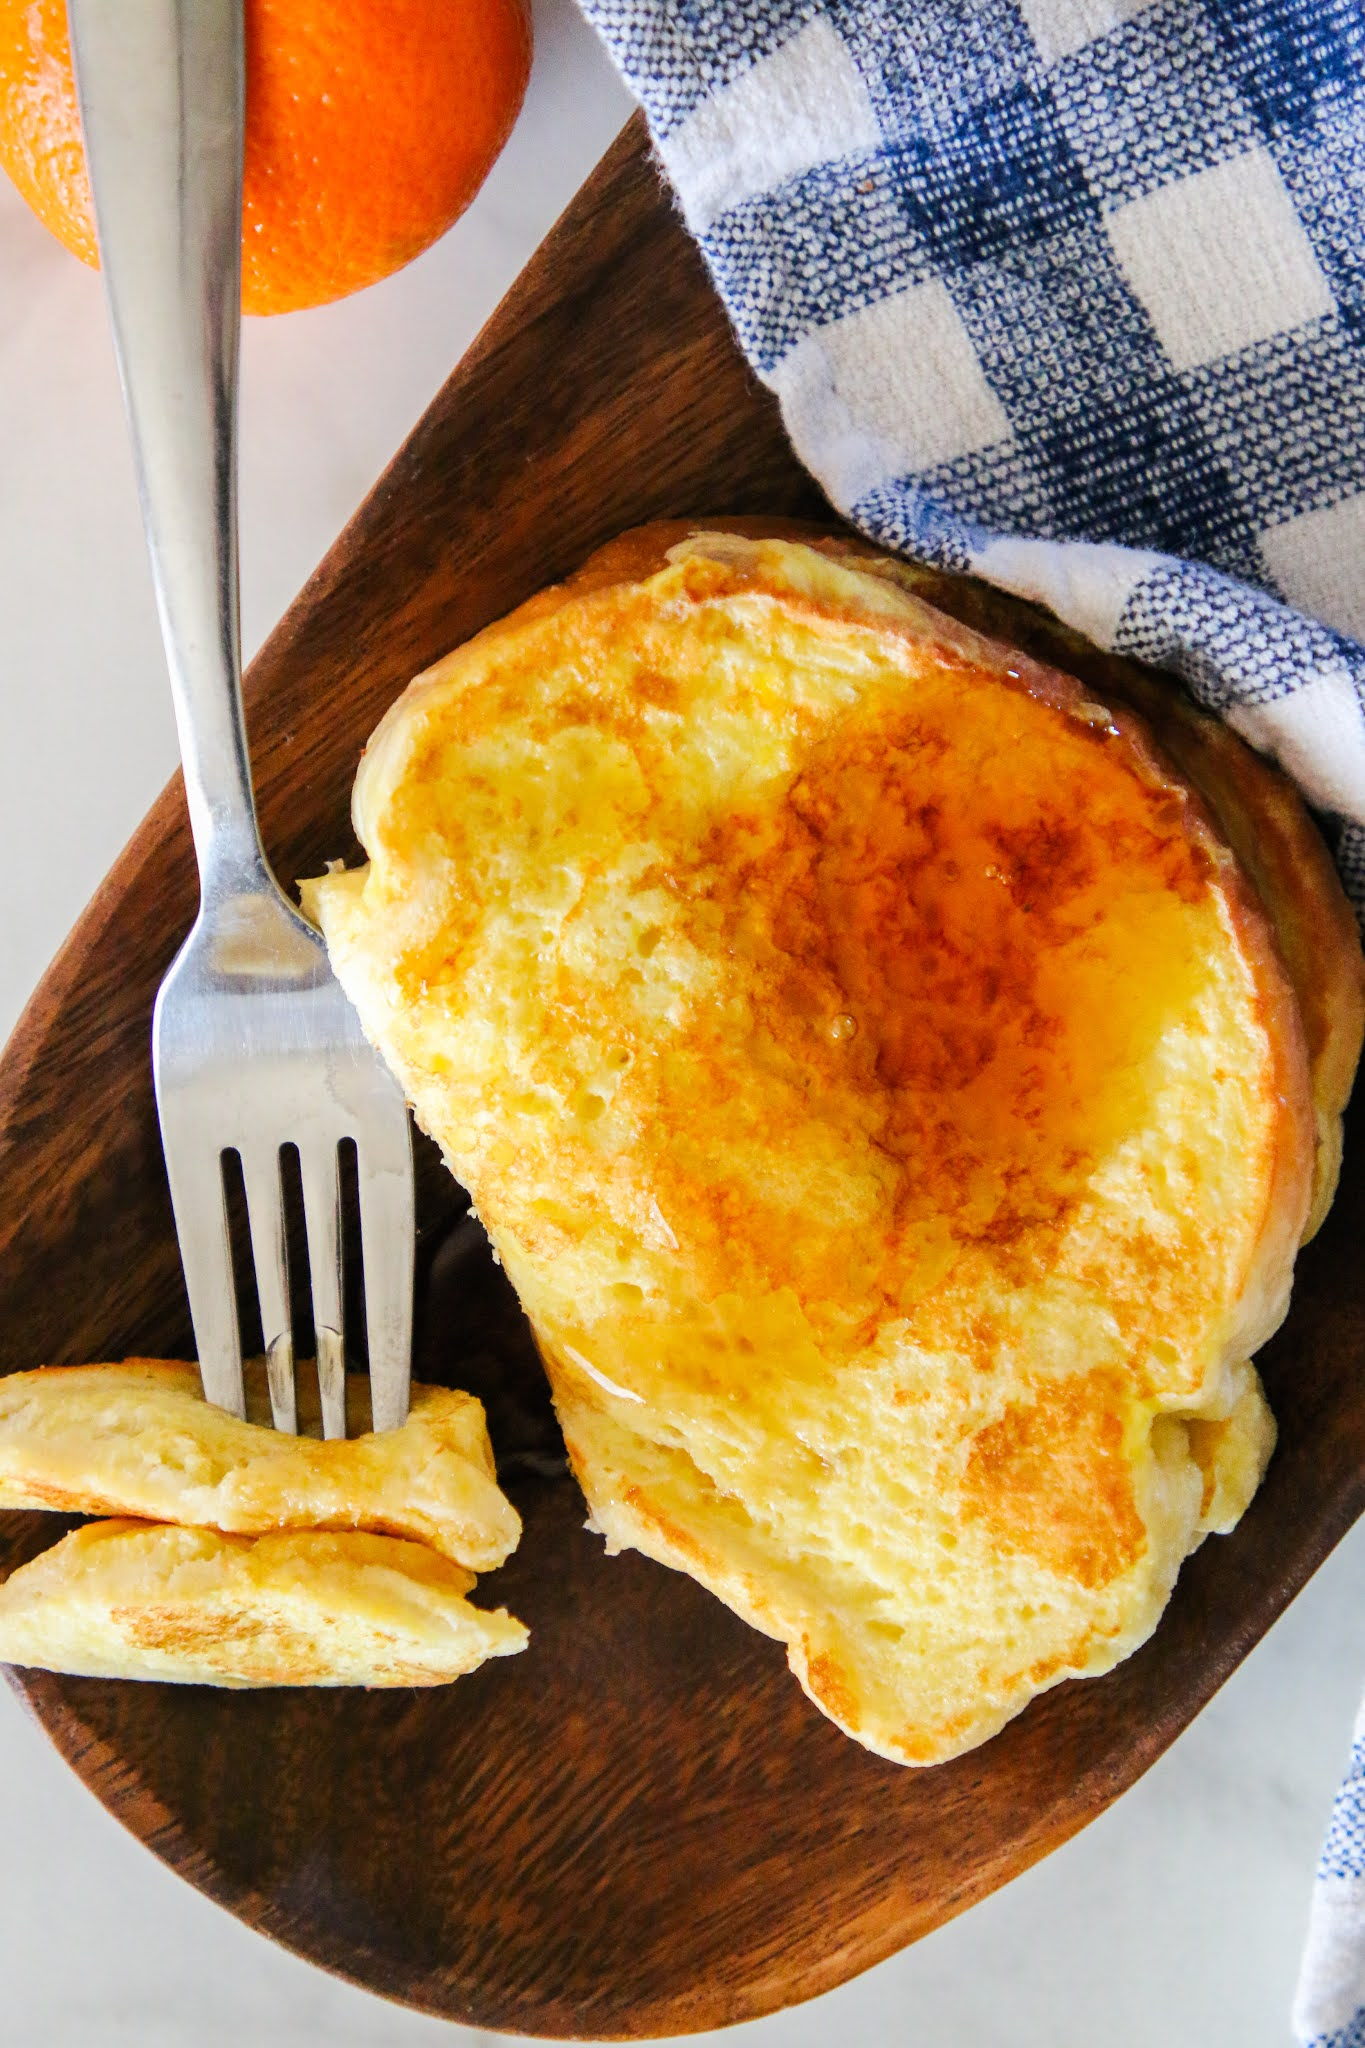 Two pieces of French Toast on a wood plate with a blue dish towel and an orange in the background. There is a for holding a bite of the French Toast.